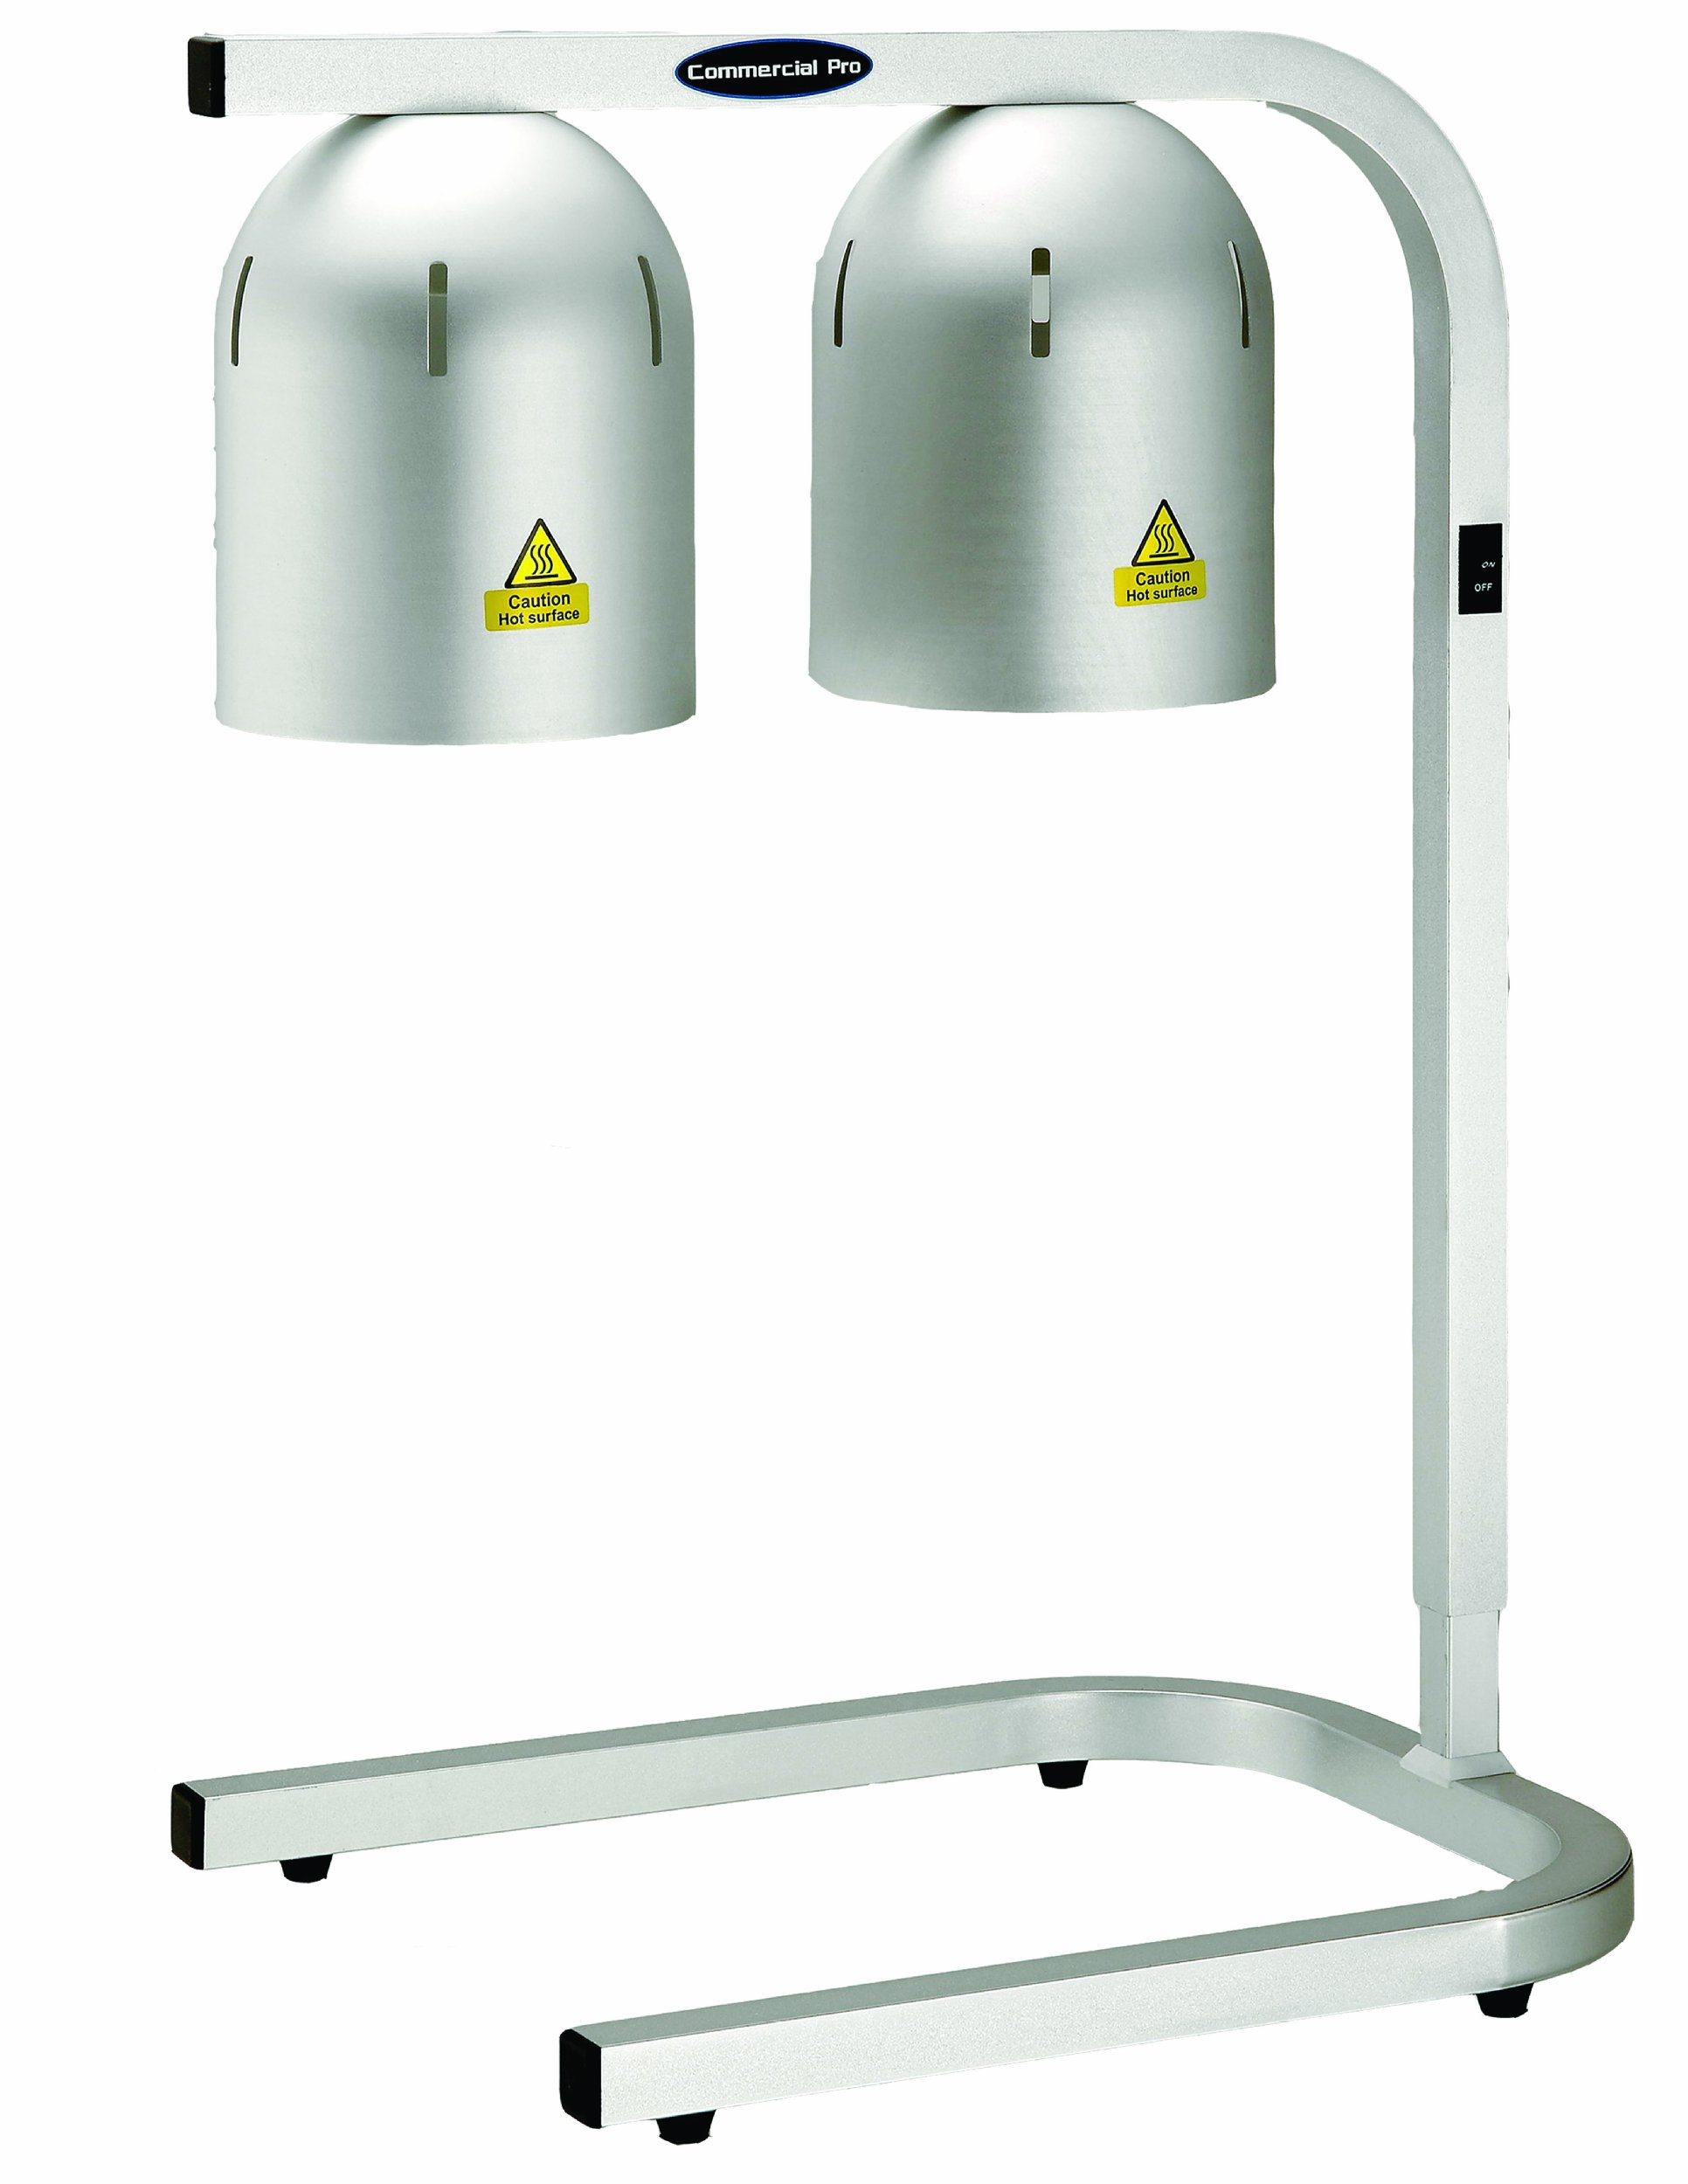 Commercial Pro CPHL-500 2-Light Warming Lamp